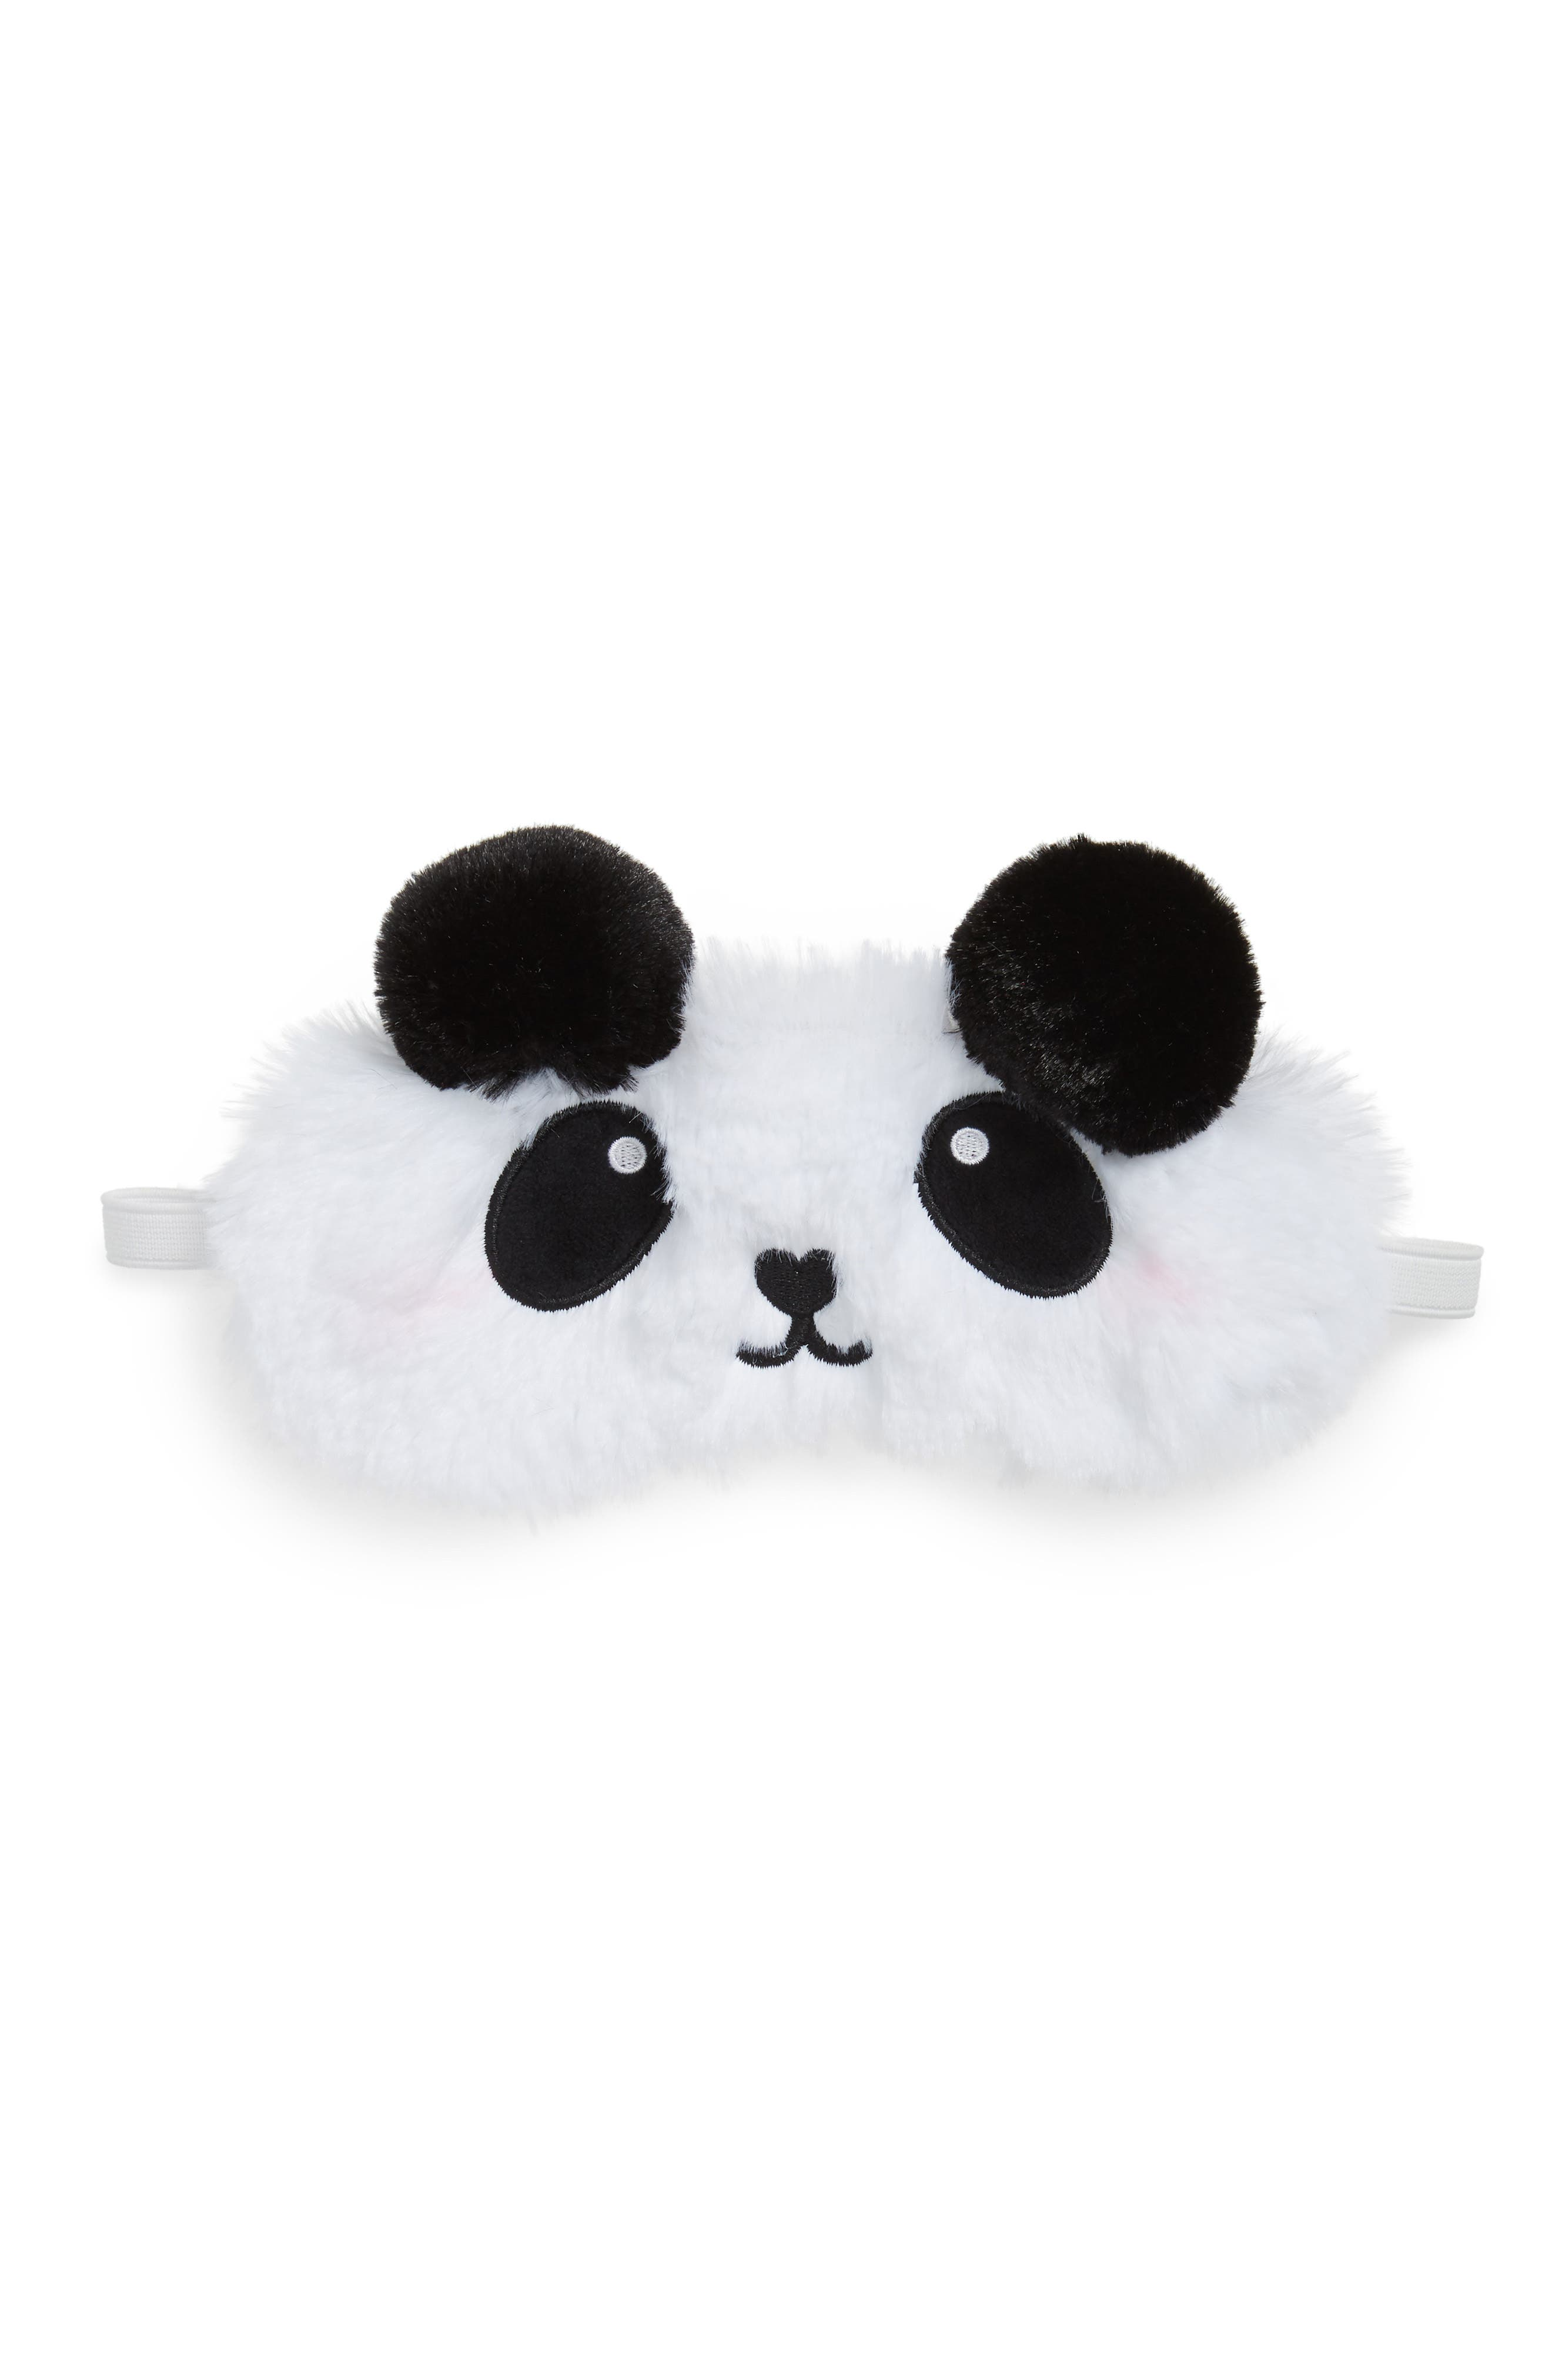 Panda Spa Eye Mask,                             Main thumbnail 1, color,                             100